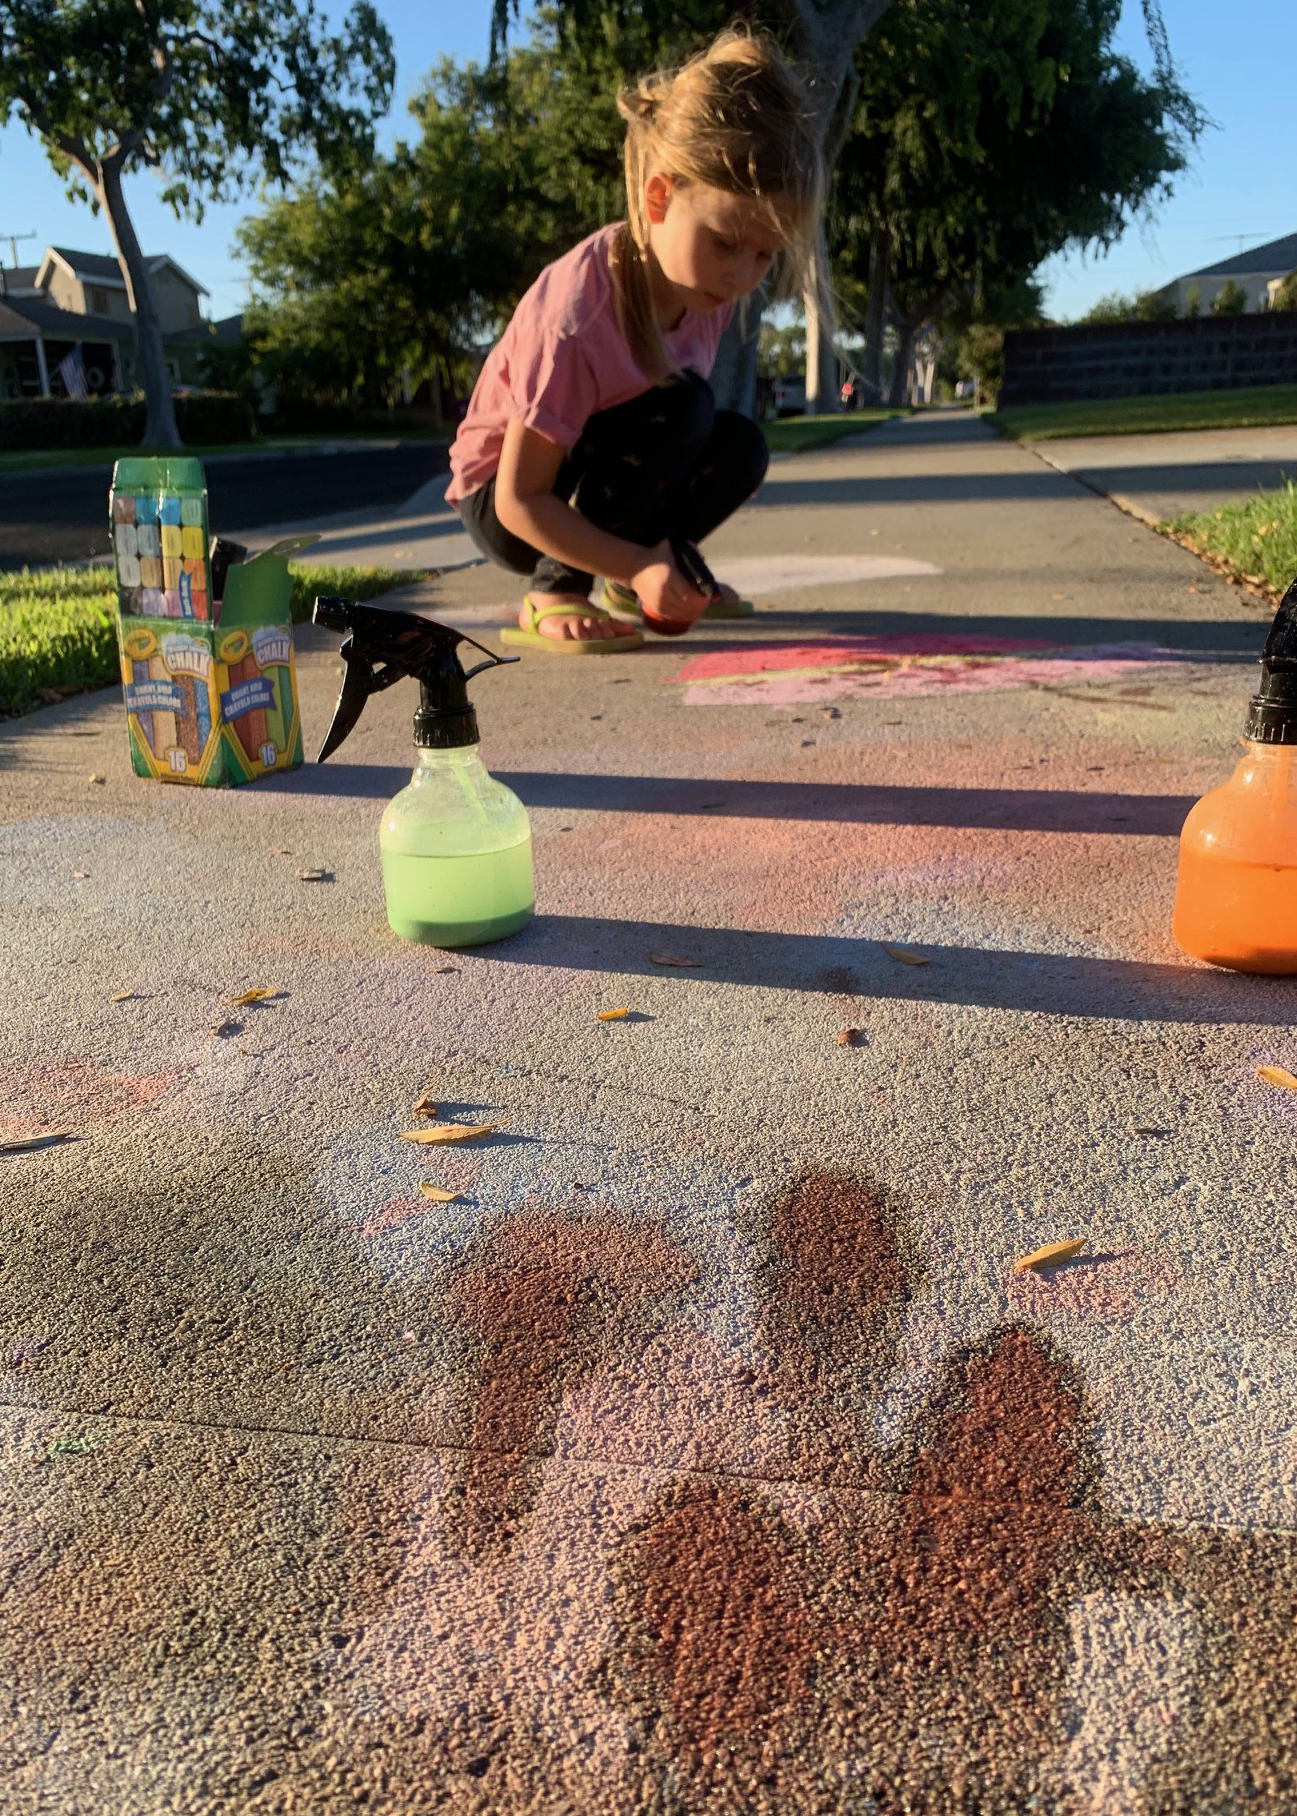 Learn how to make your own chalk spray, the easy way!